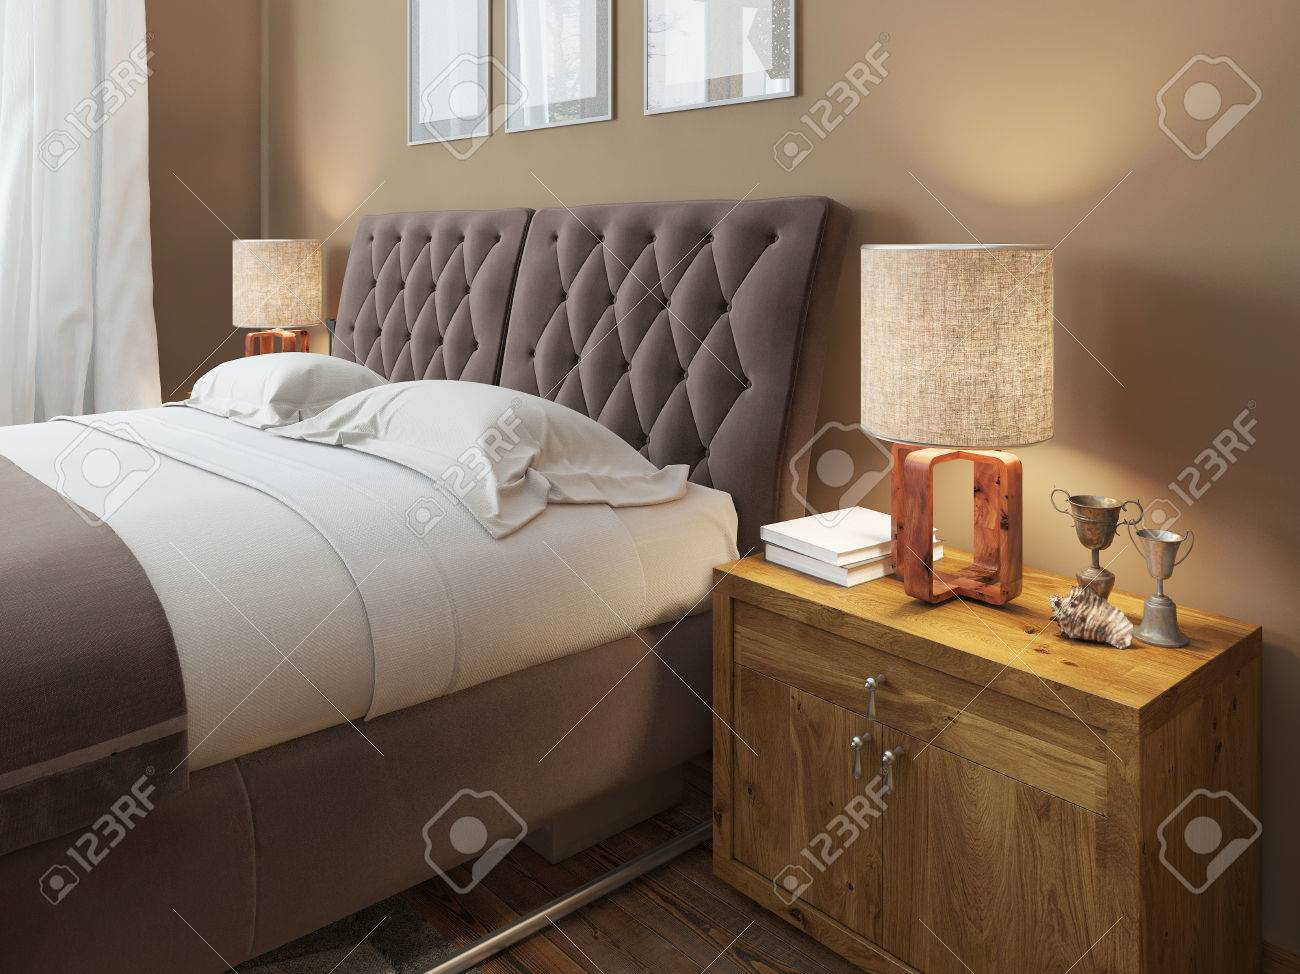 Stock Photo   Wooden Bedside Tables With Expressive Textures In A Modern  Bedroom. On The Bedside Table Lamps In A Rustic Style Decor.